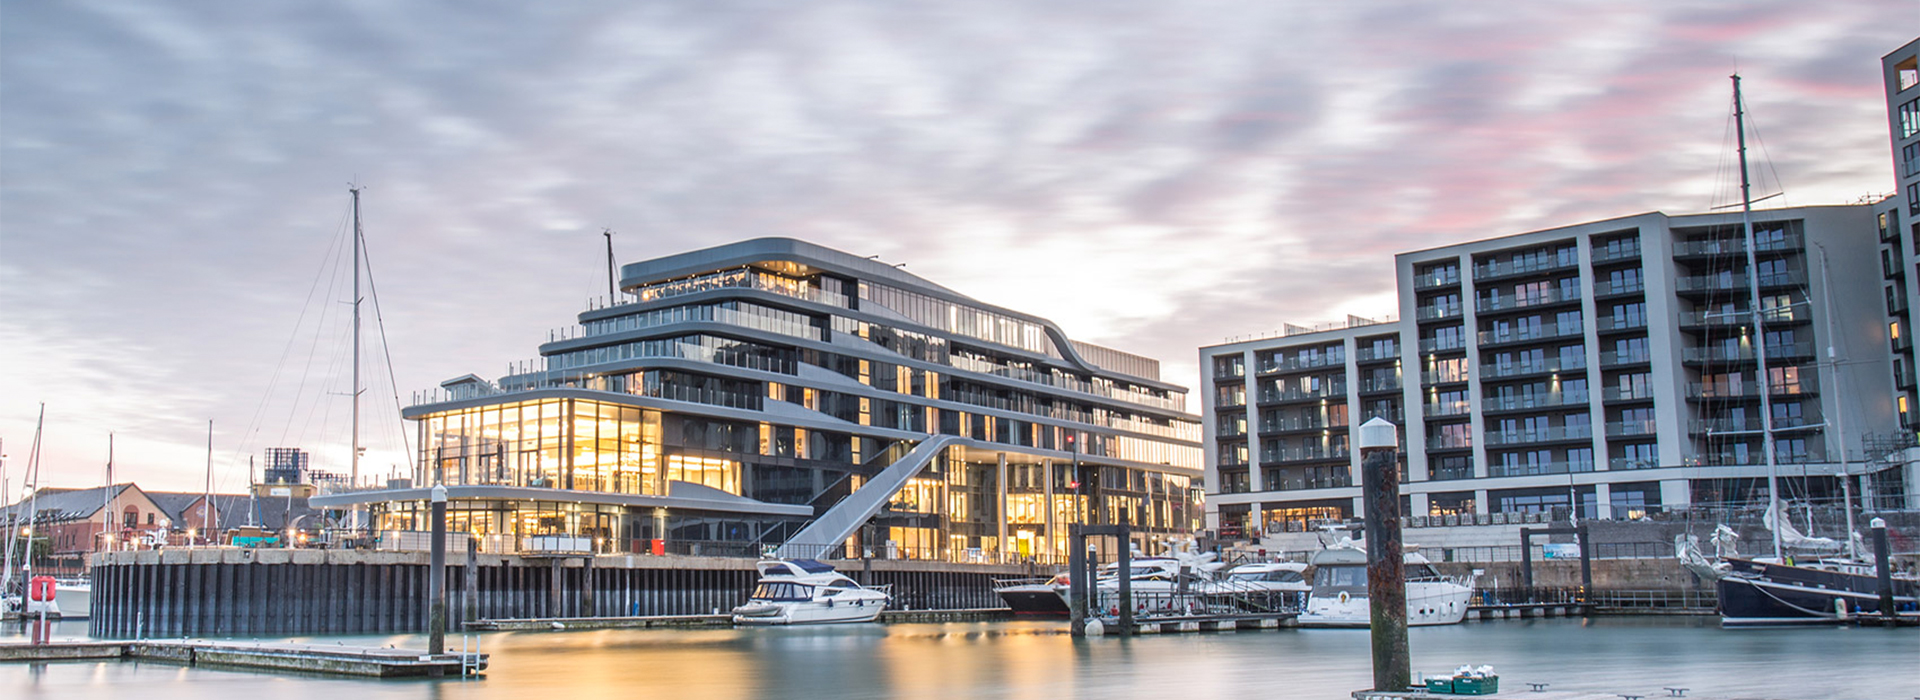 DELIVERING A LUXURY 5* WATERFRONT HOTEL & SPA